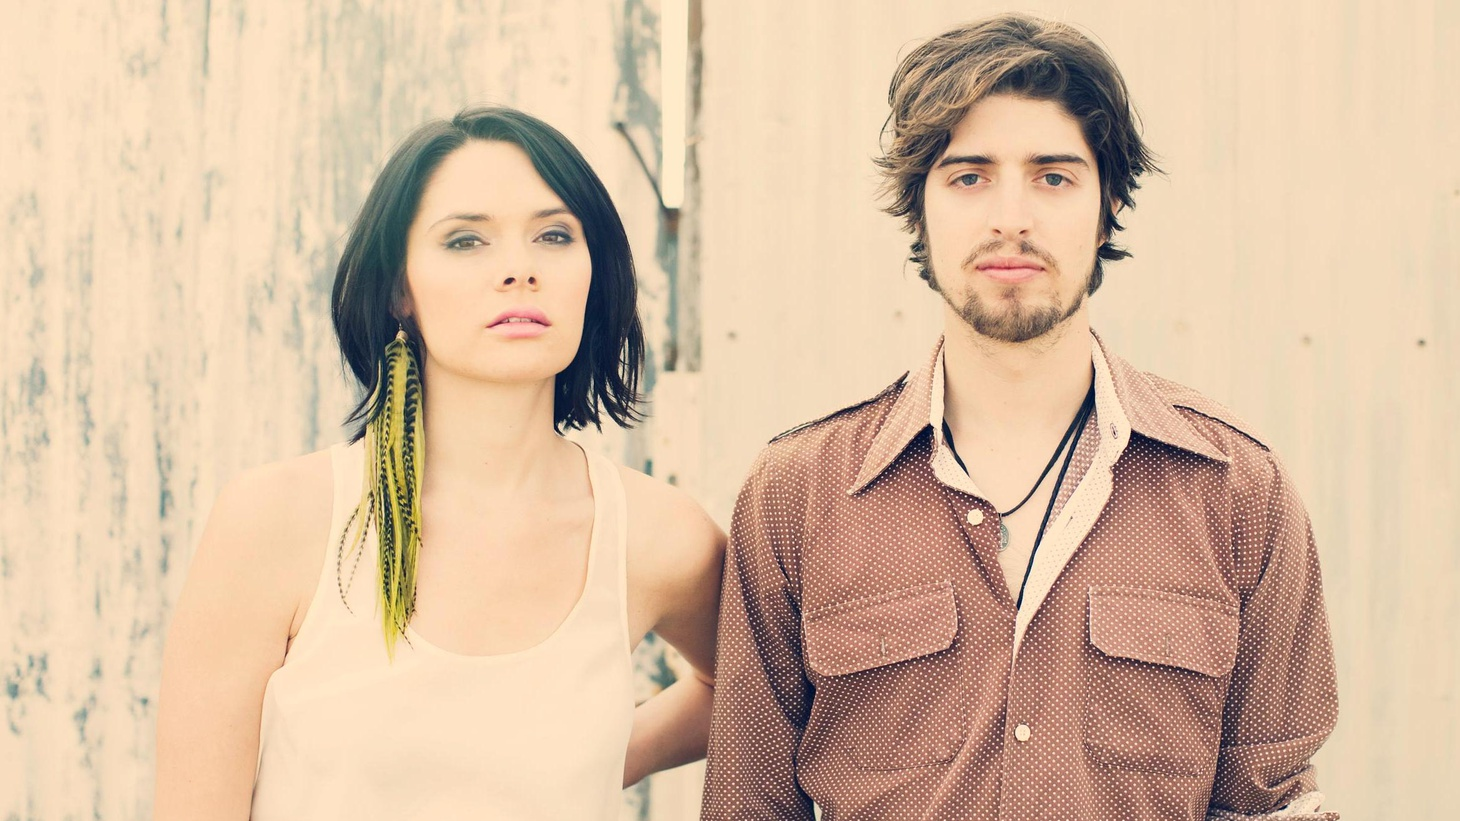 HoneyHoney is one of LA's most promising new bands. The duo sing Americana-tinged songs that reflect their love of cowboys and country...